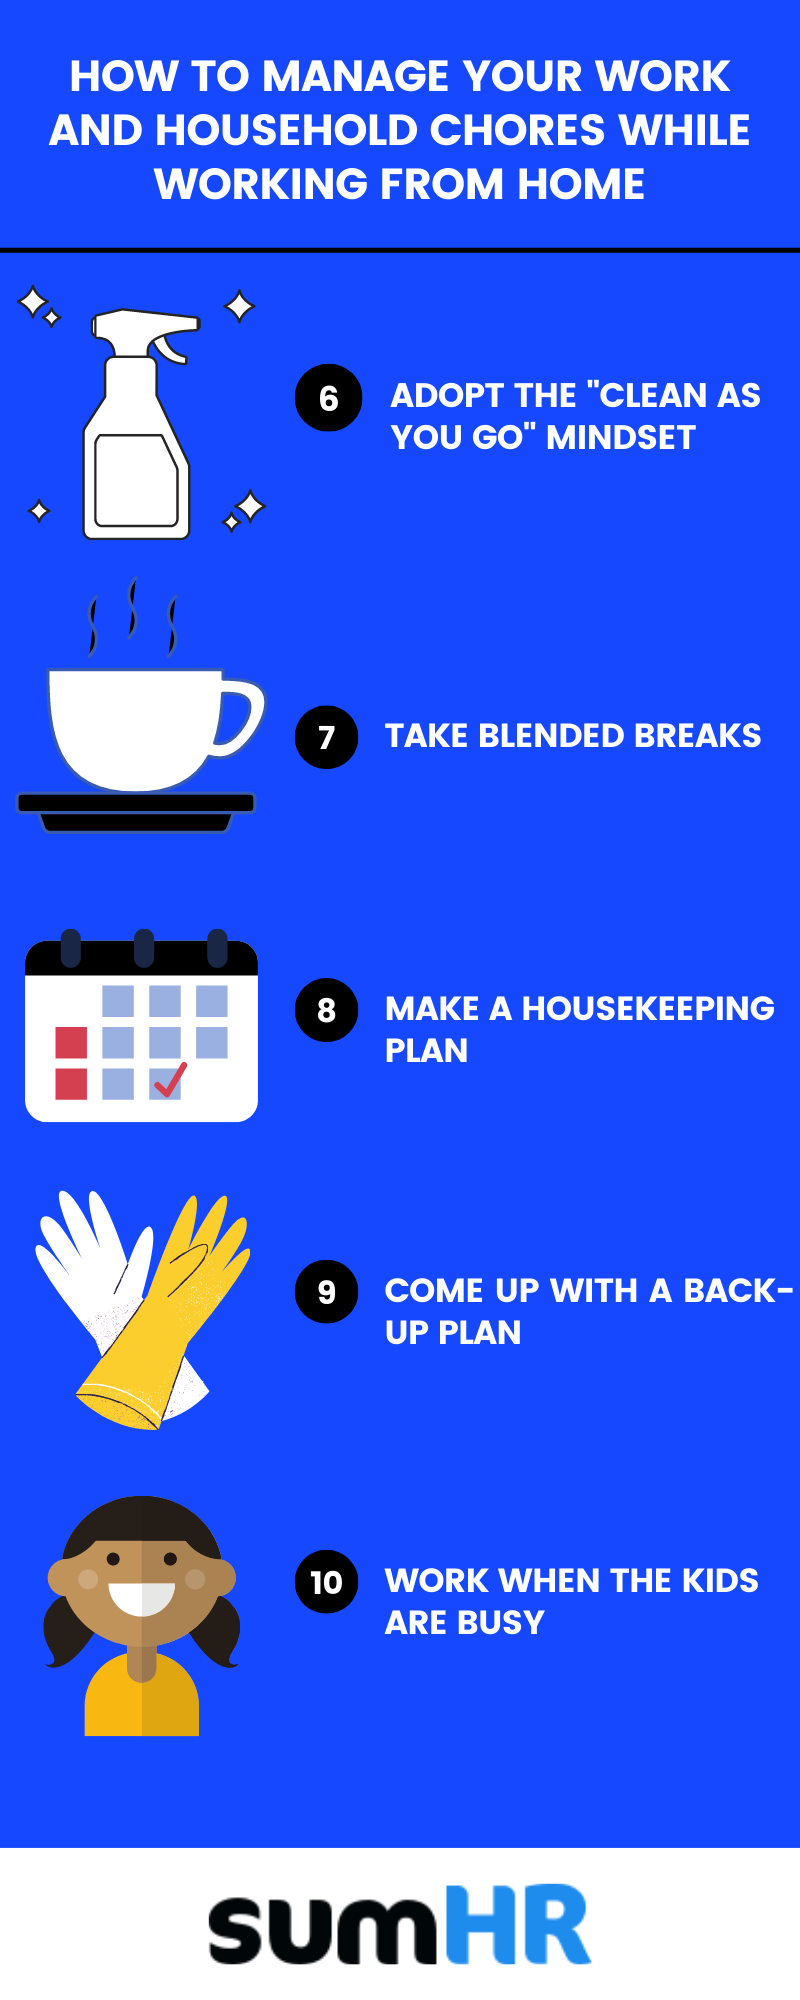 How to manage your household chores while working from home